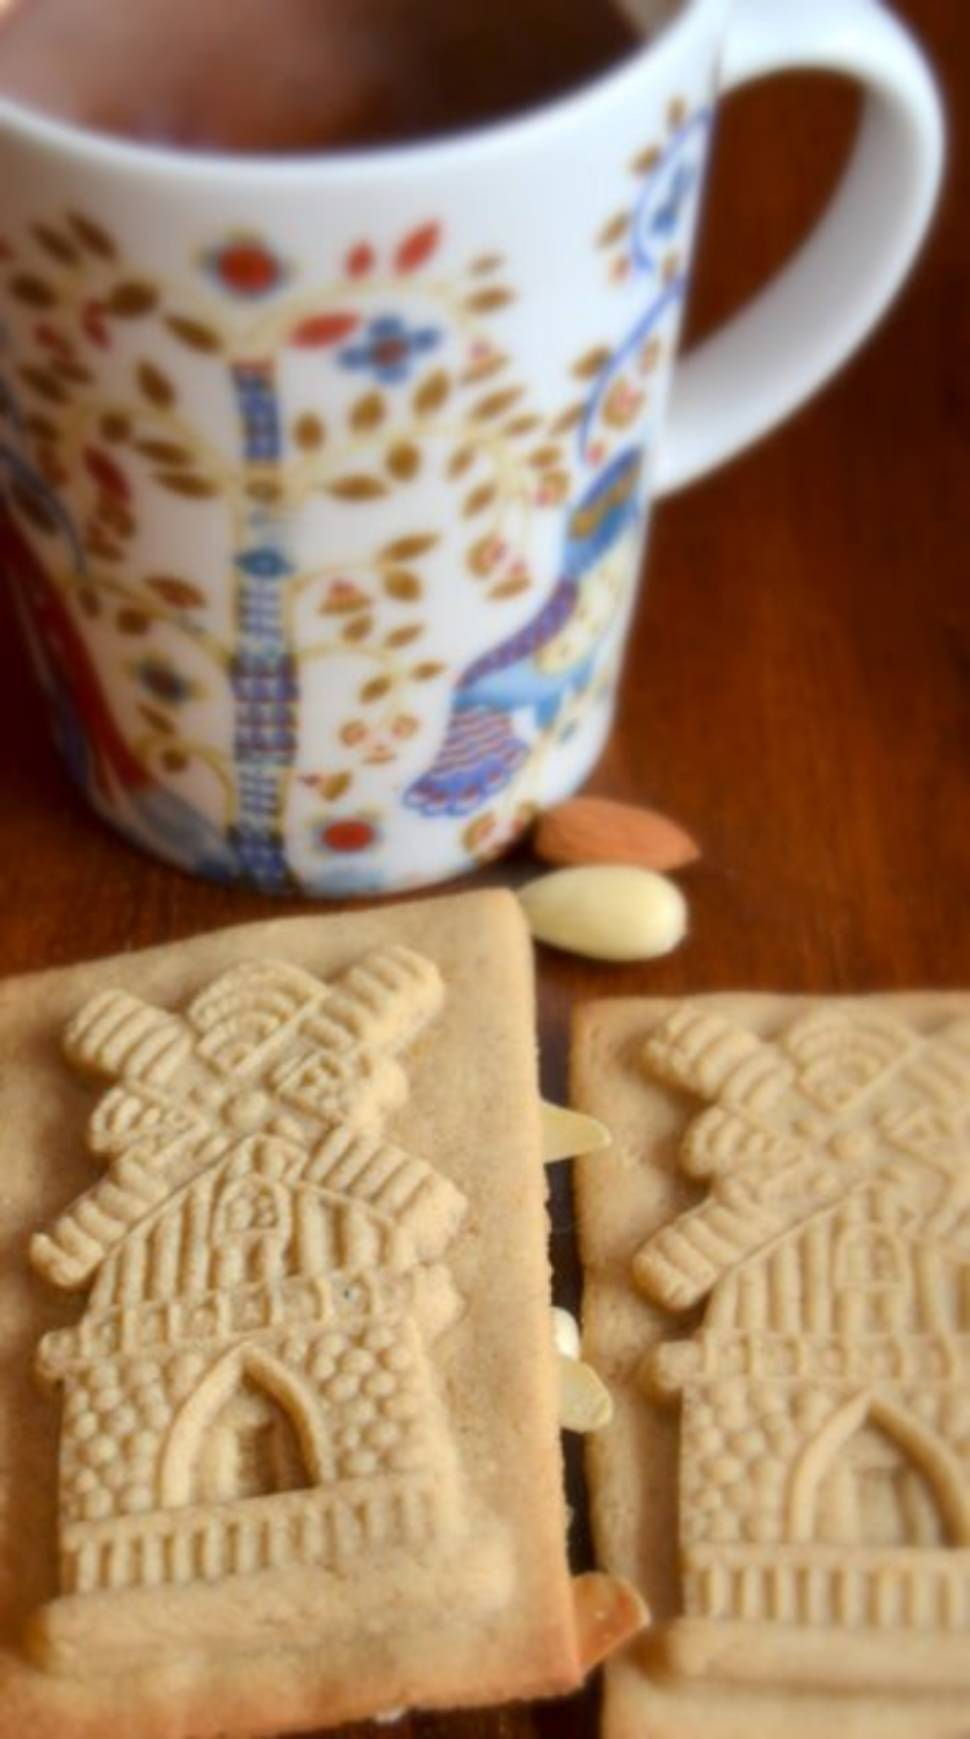 Speculaas in The Netherlands - Best Season